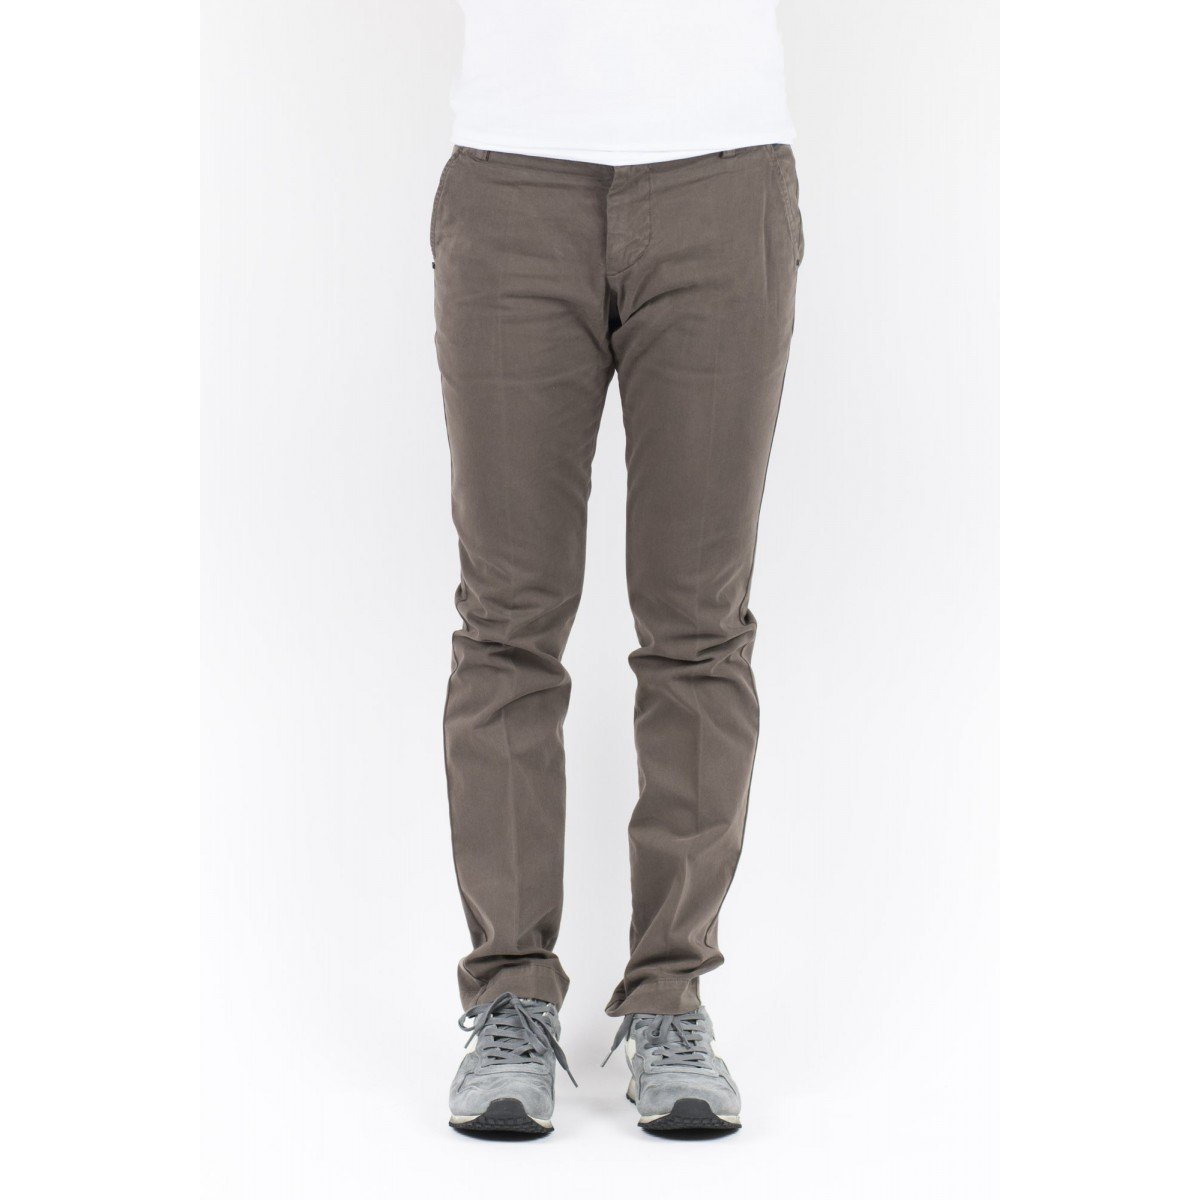 Trousers Entre Amis Man - A15 8201 501 - Cioccolato